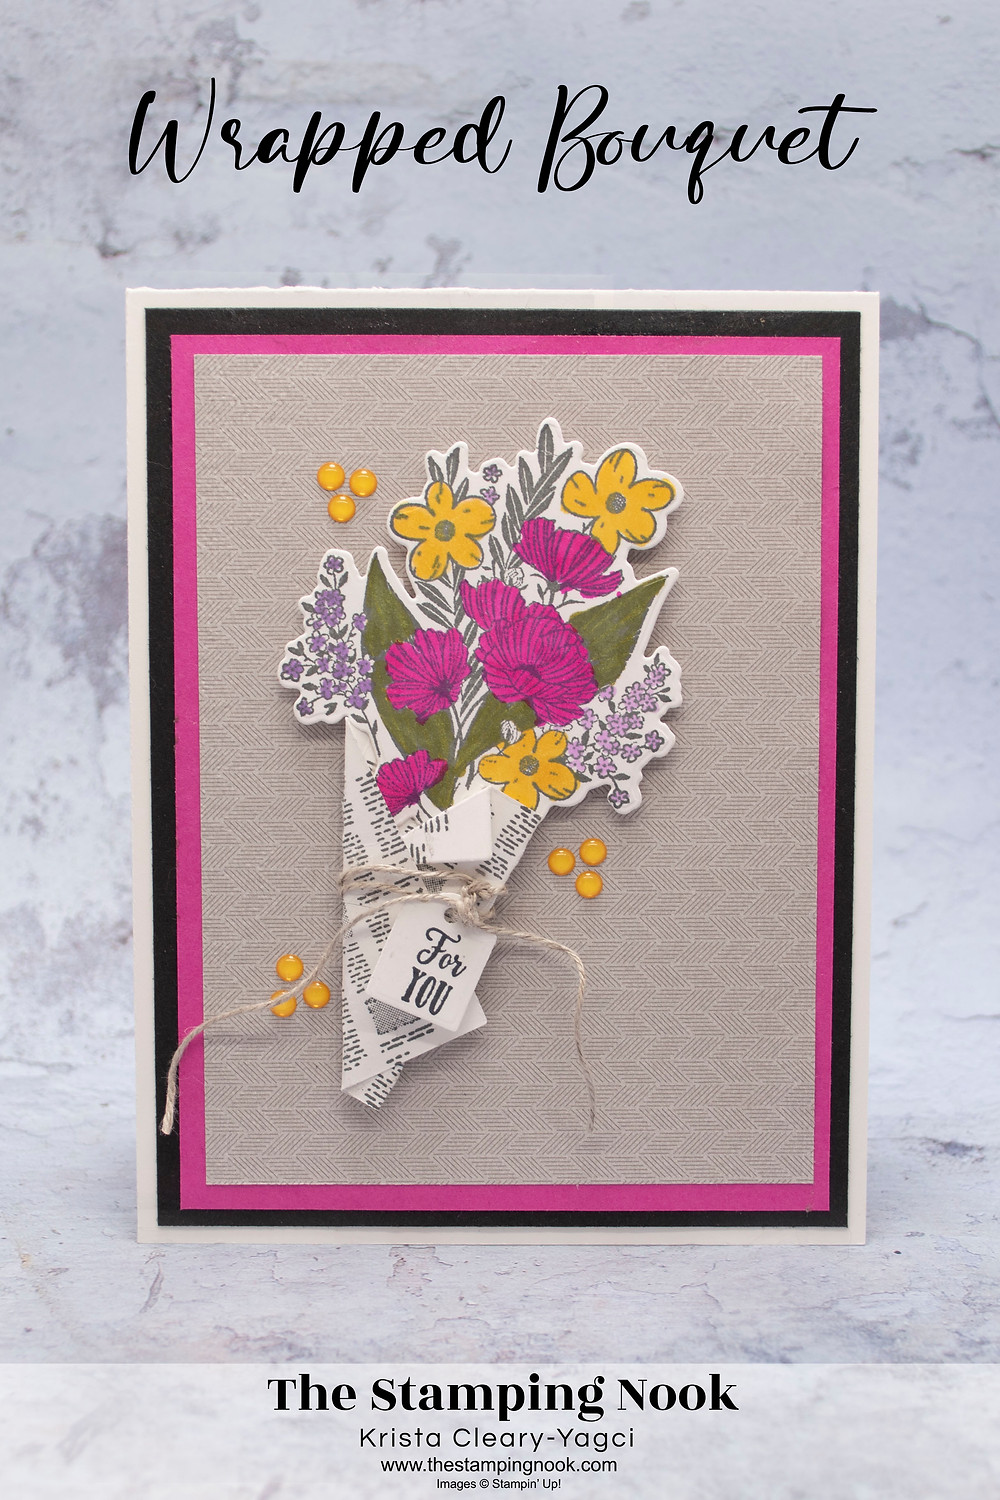 Stampin' Up! Wrapped Bouquet - Wrapped Bouquet Stampin' Up! - Mother's Day Cards - Stampin' Up! Card Ideas - The Stamping Nook -- Krista Yagci